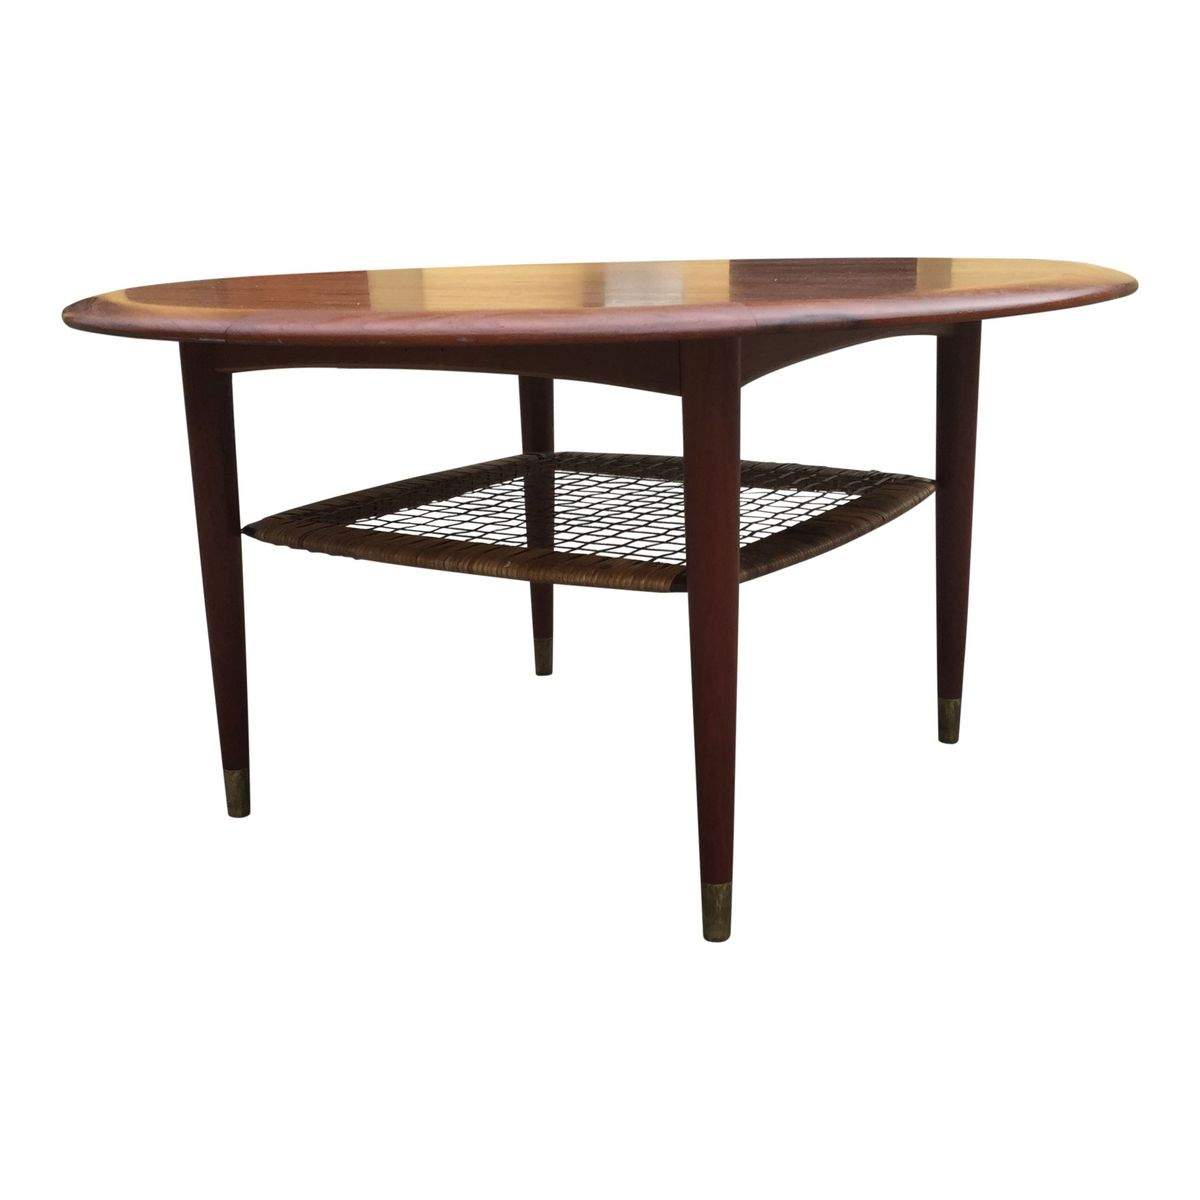 Round Coffee Table Uk Sale: Round Teak Coffee Table From CFC Silkeborg, 1960s For Sale